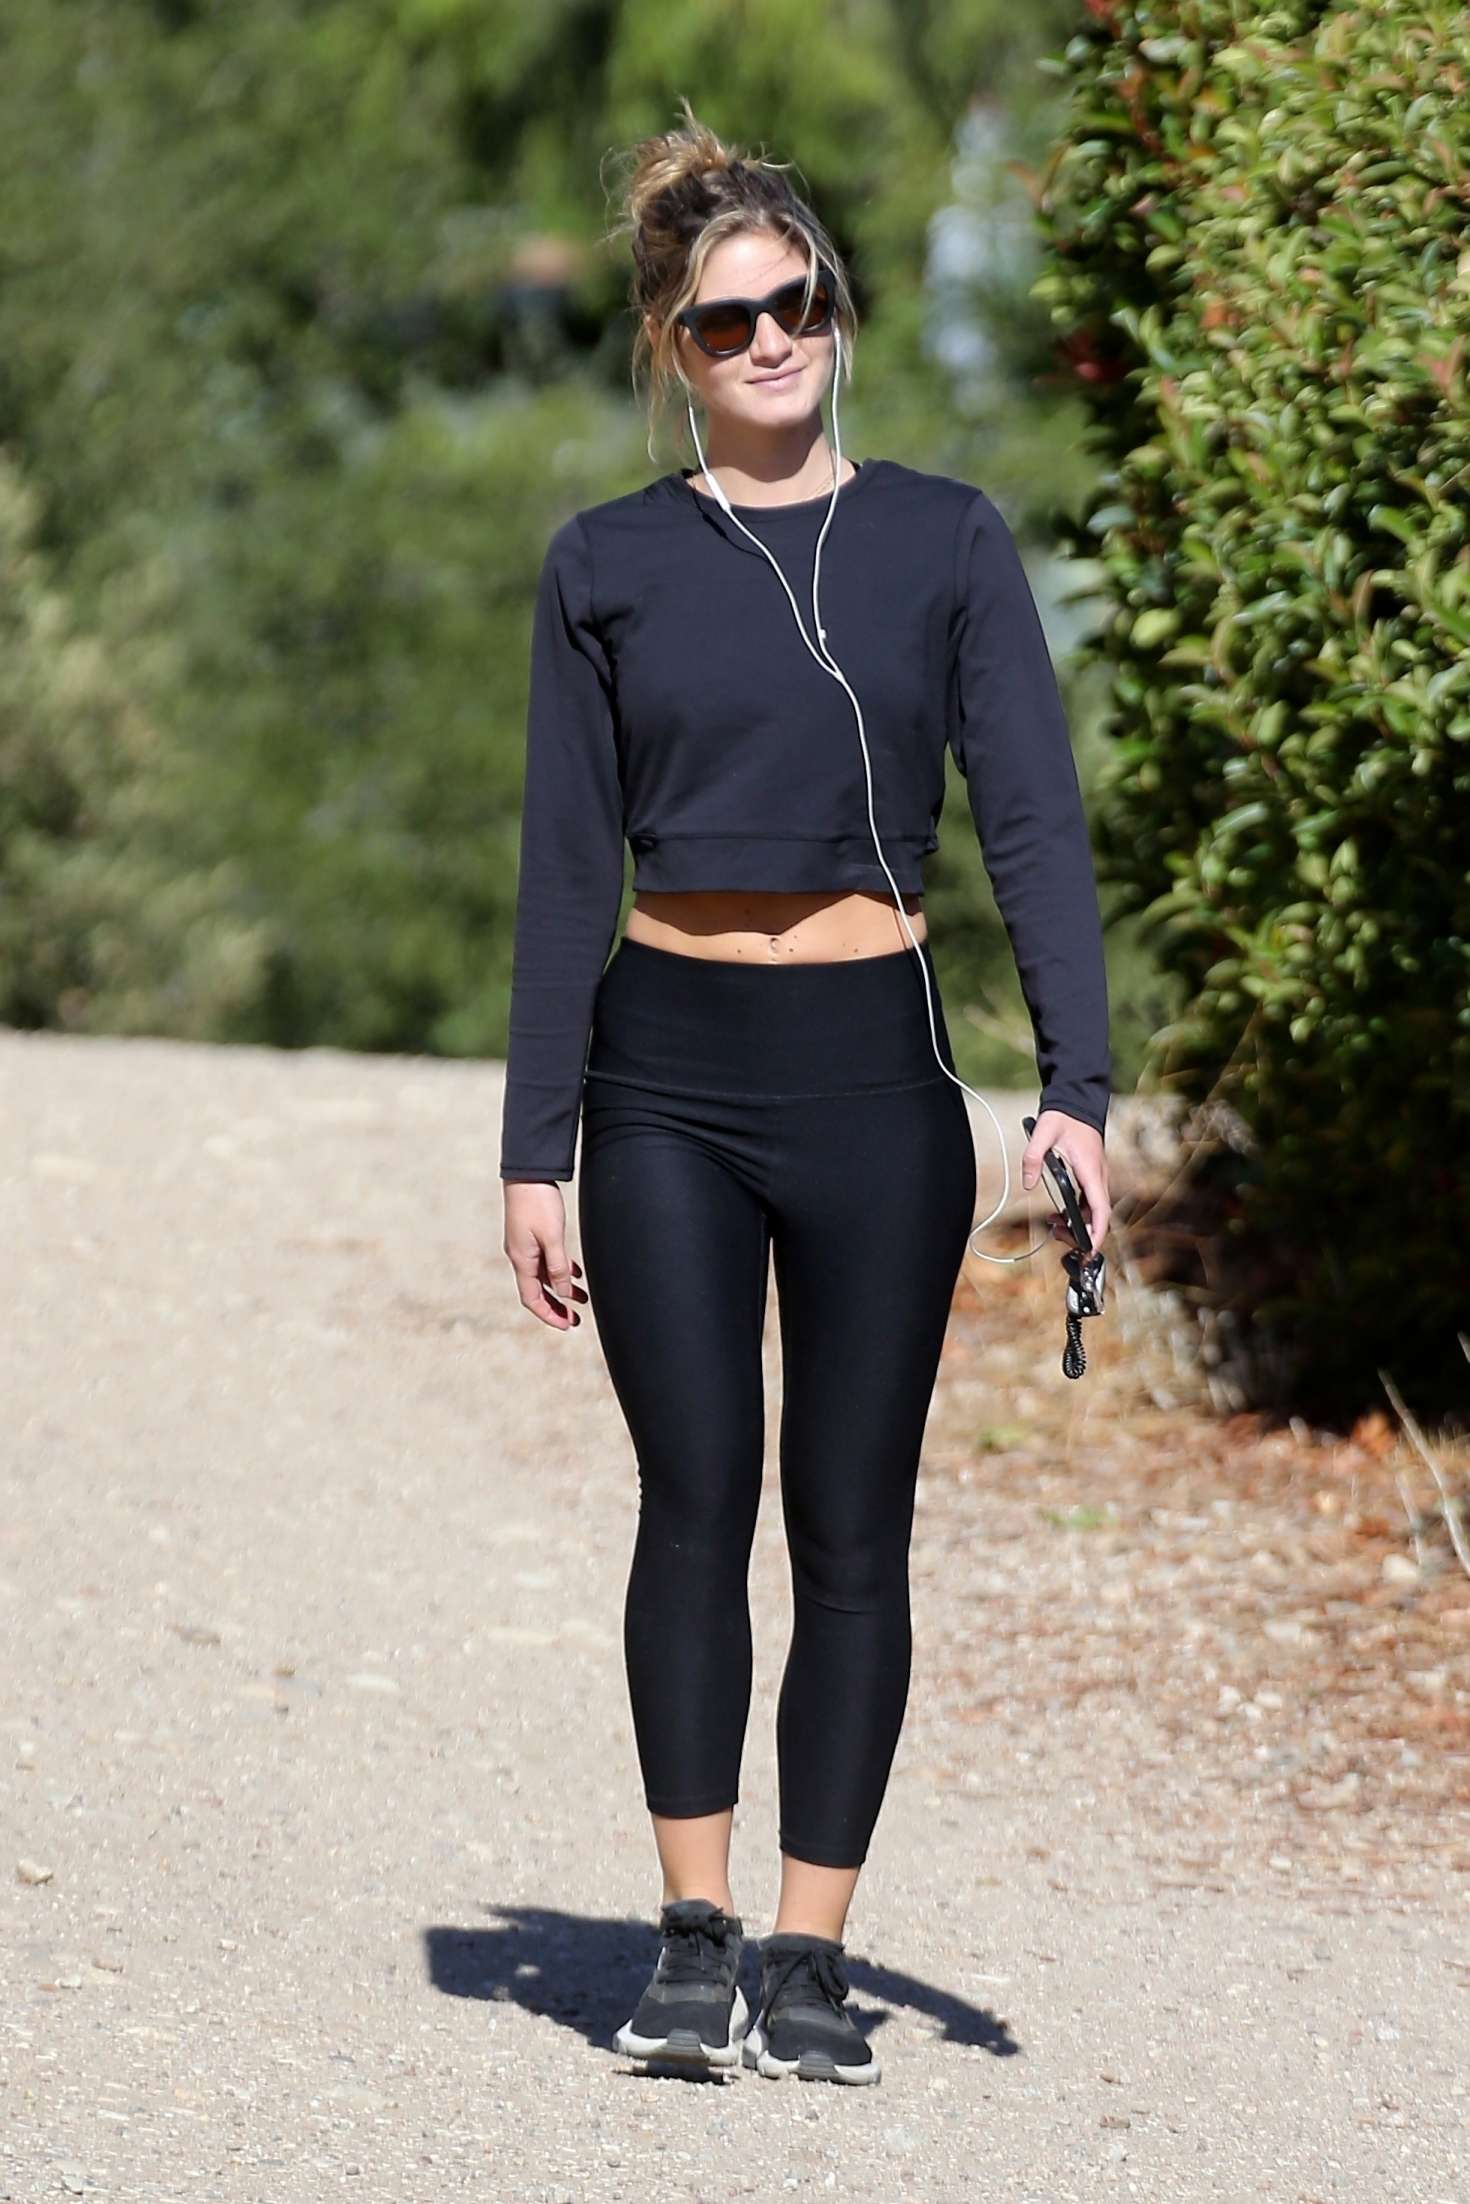 Shauna Sexton in Leggings – Out for a hike in Los Angeles